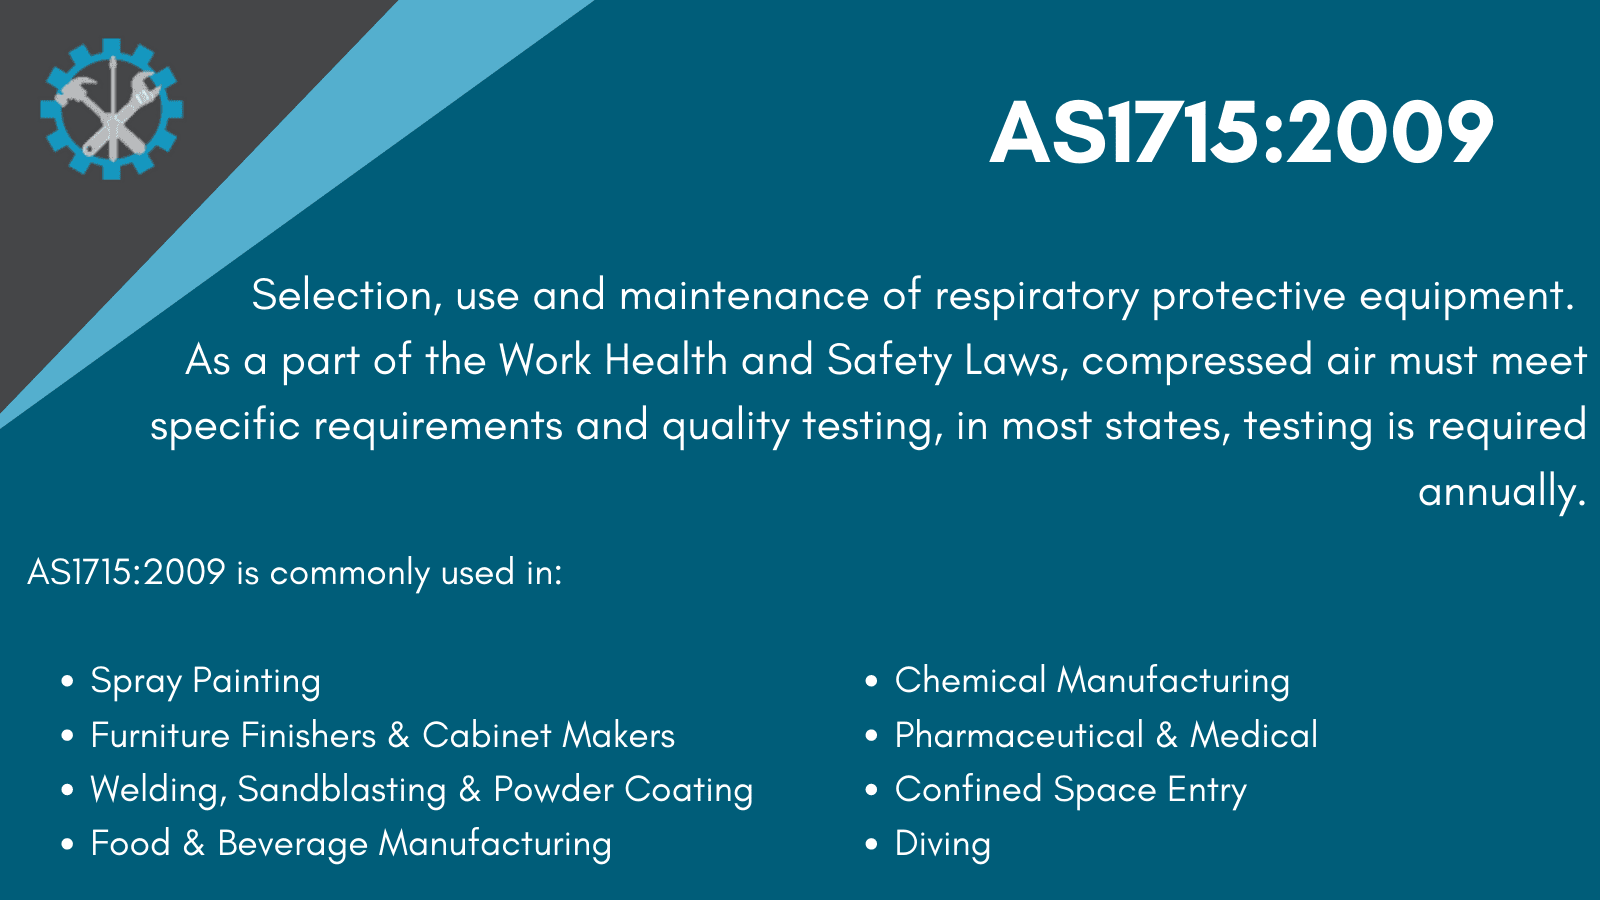 AS1715:2009 Standard infographic